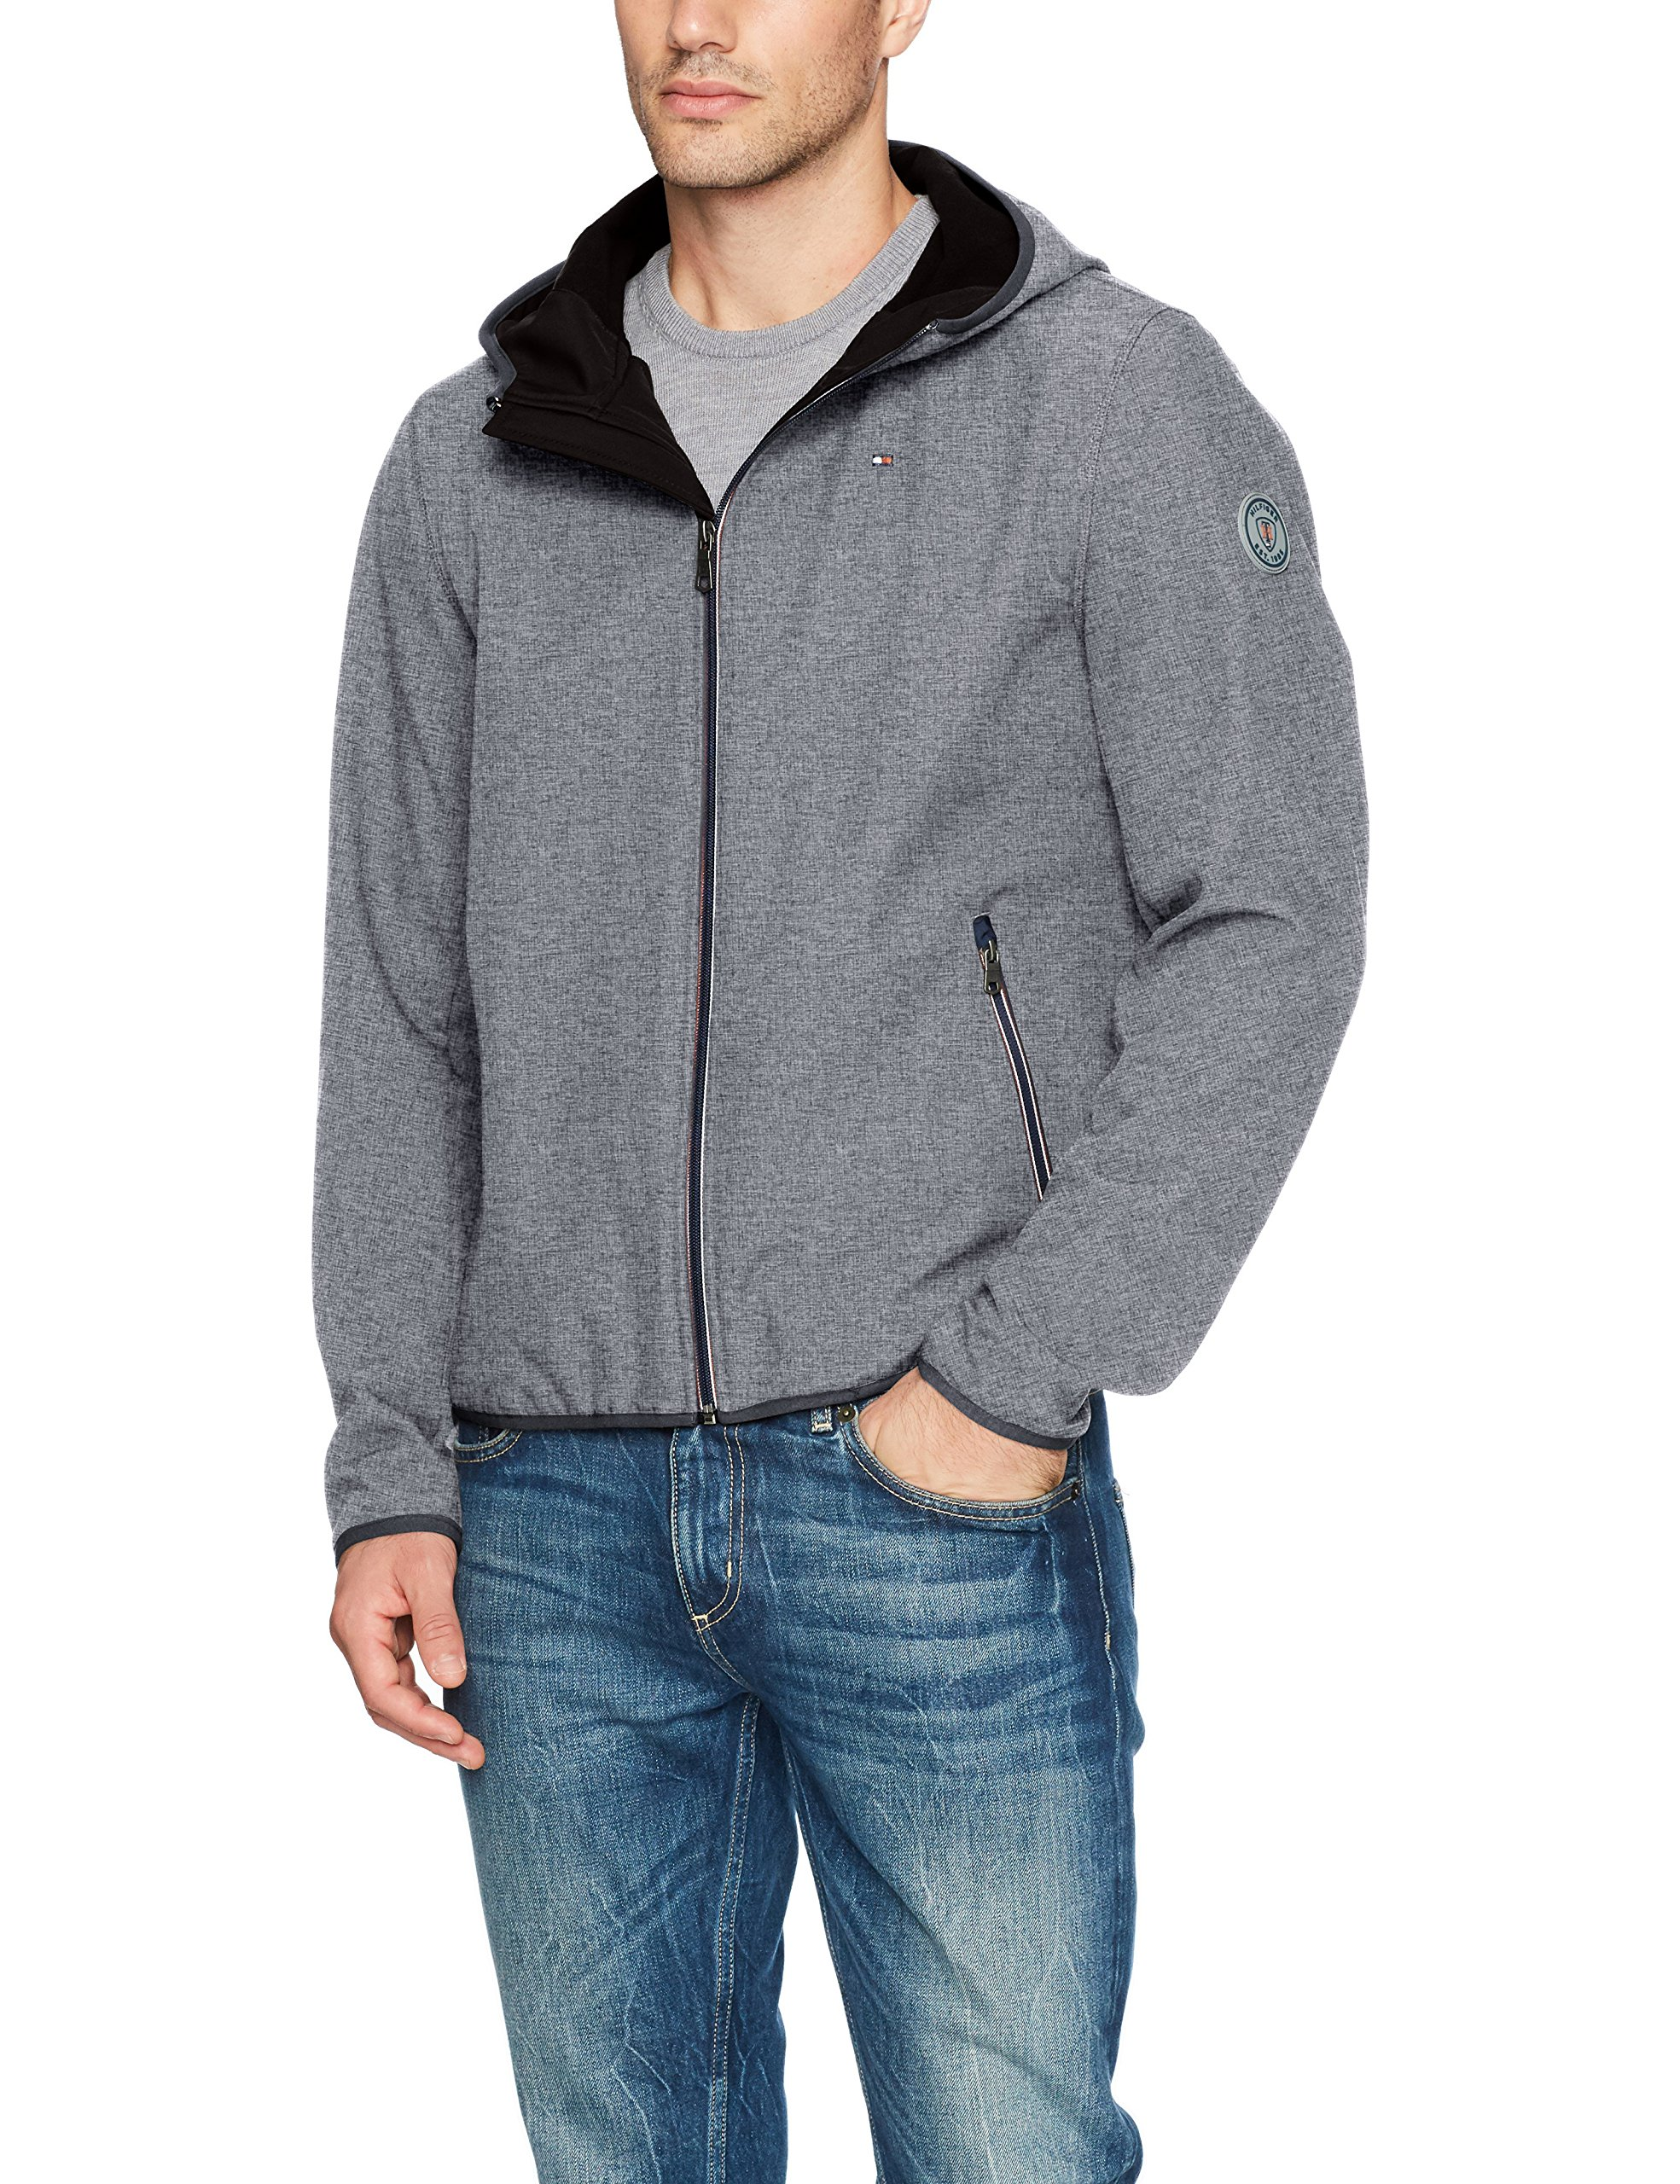 Tommy Hilfiger Men's Hooded Performance Soft Shell Jacket, Heather Grey, Large